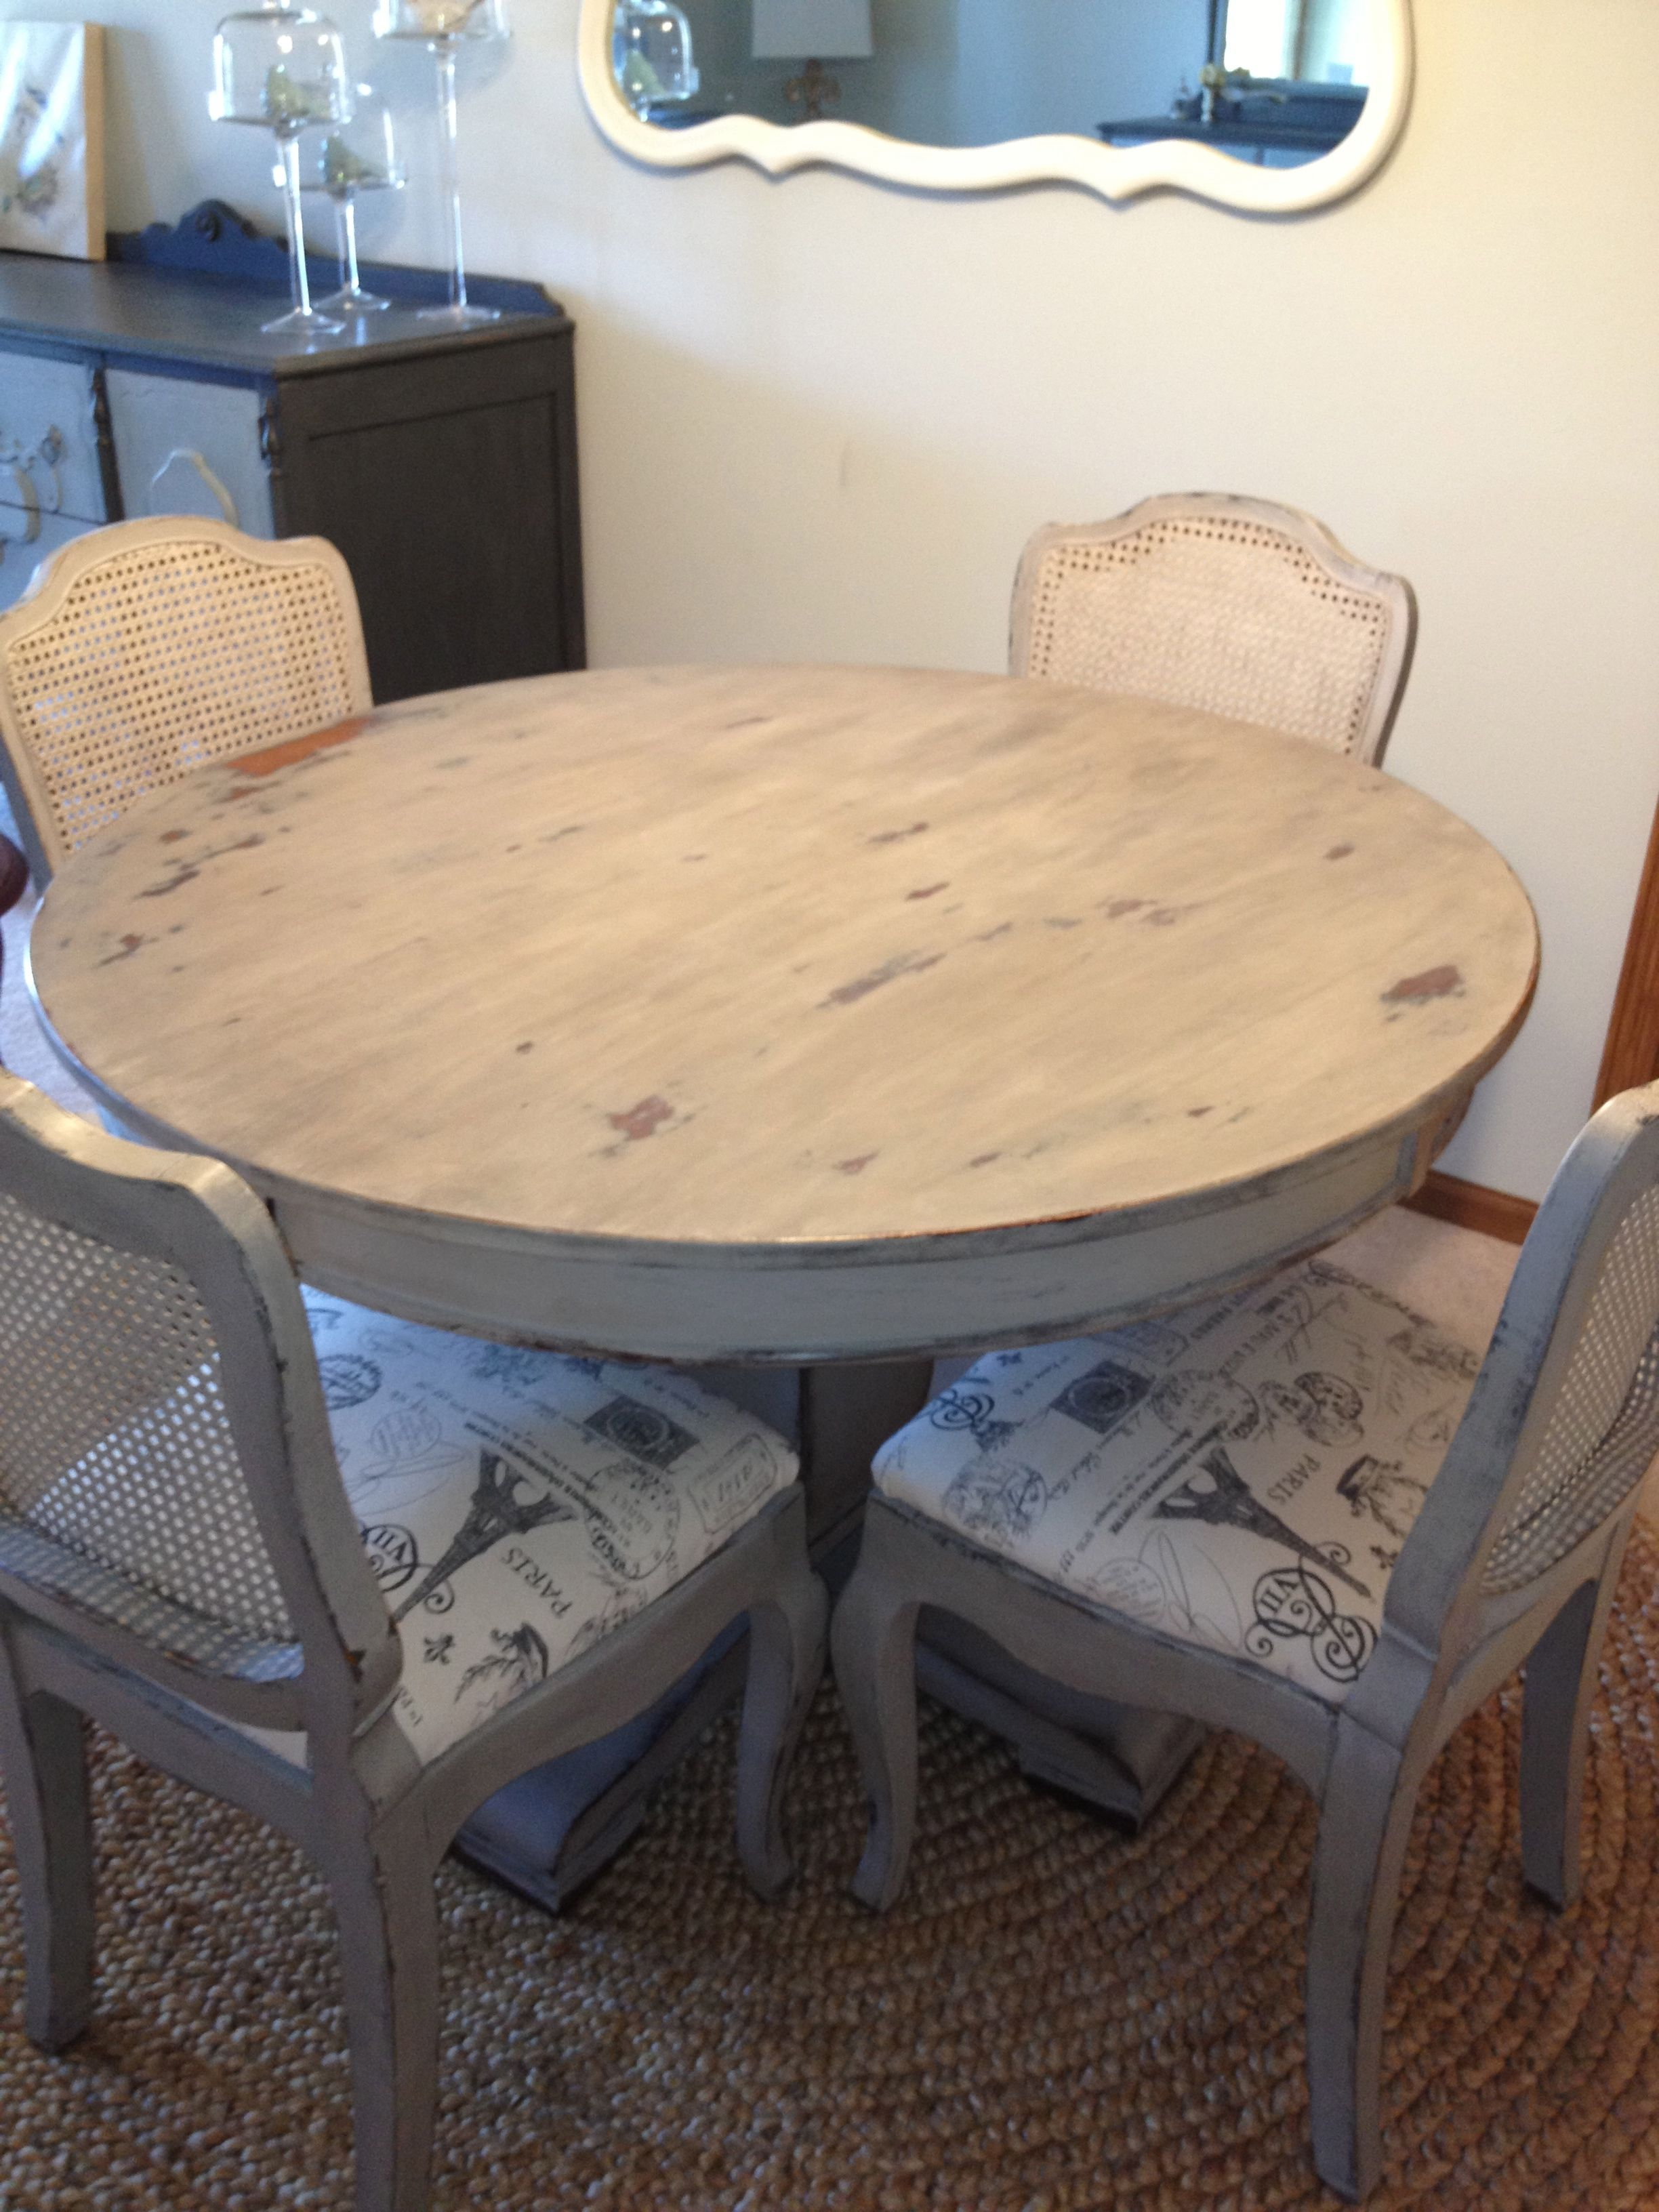 Dining Table & Chairs - Refinished in CeCe Caldwell Chalk & Clay ...